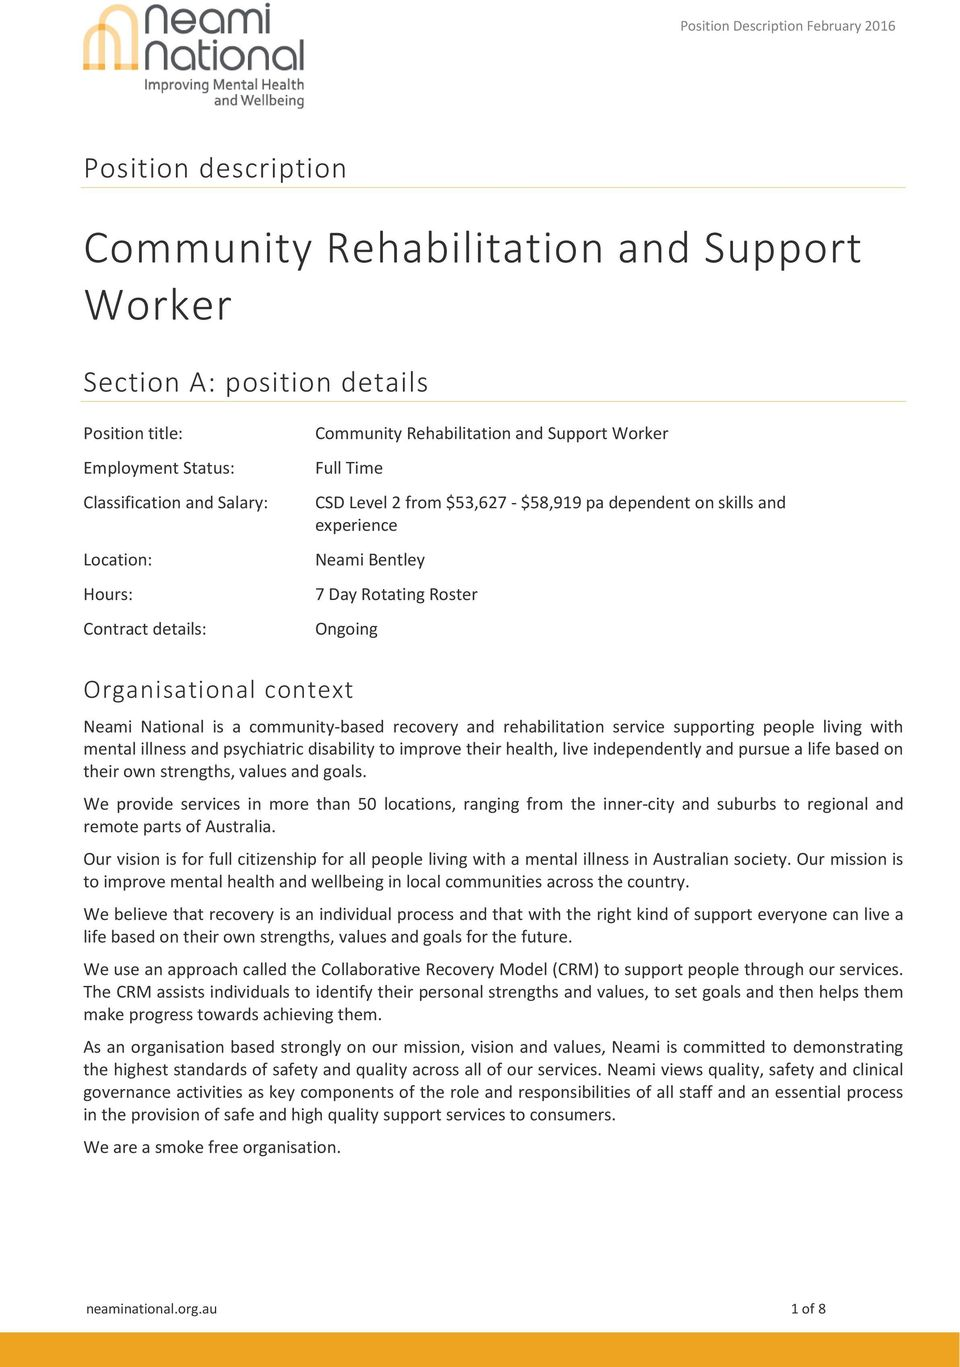 Organisational context Neami National is a community-based recovery and rehabilitation service supporting people living with mental illness and psychiatric disability to improve their health, live